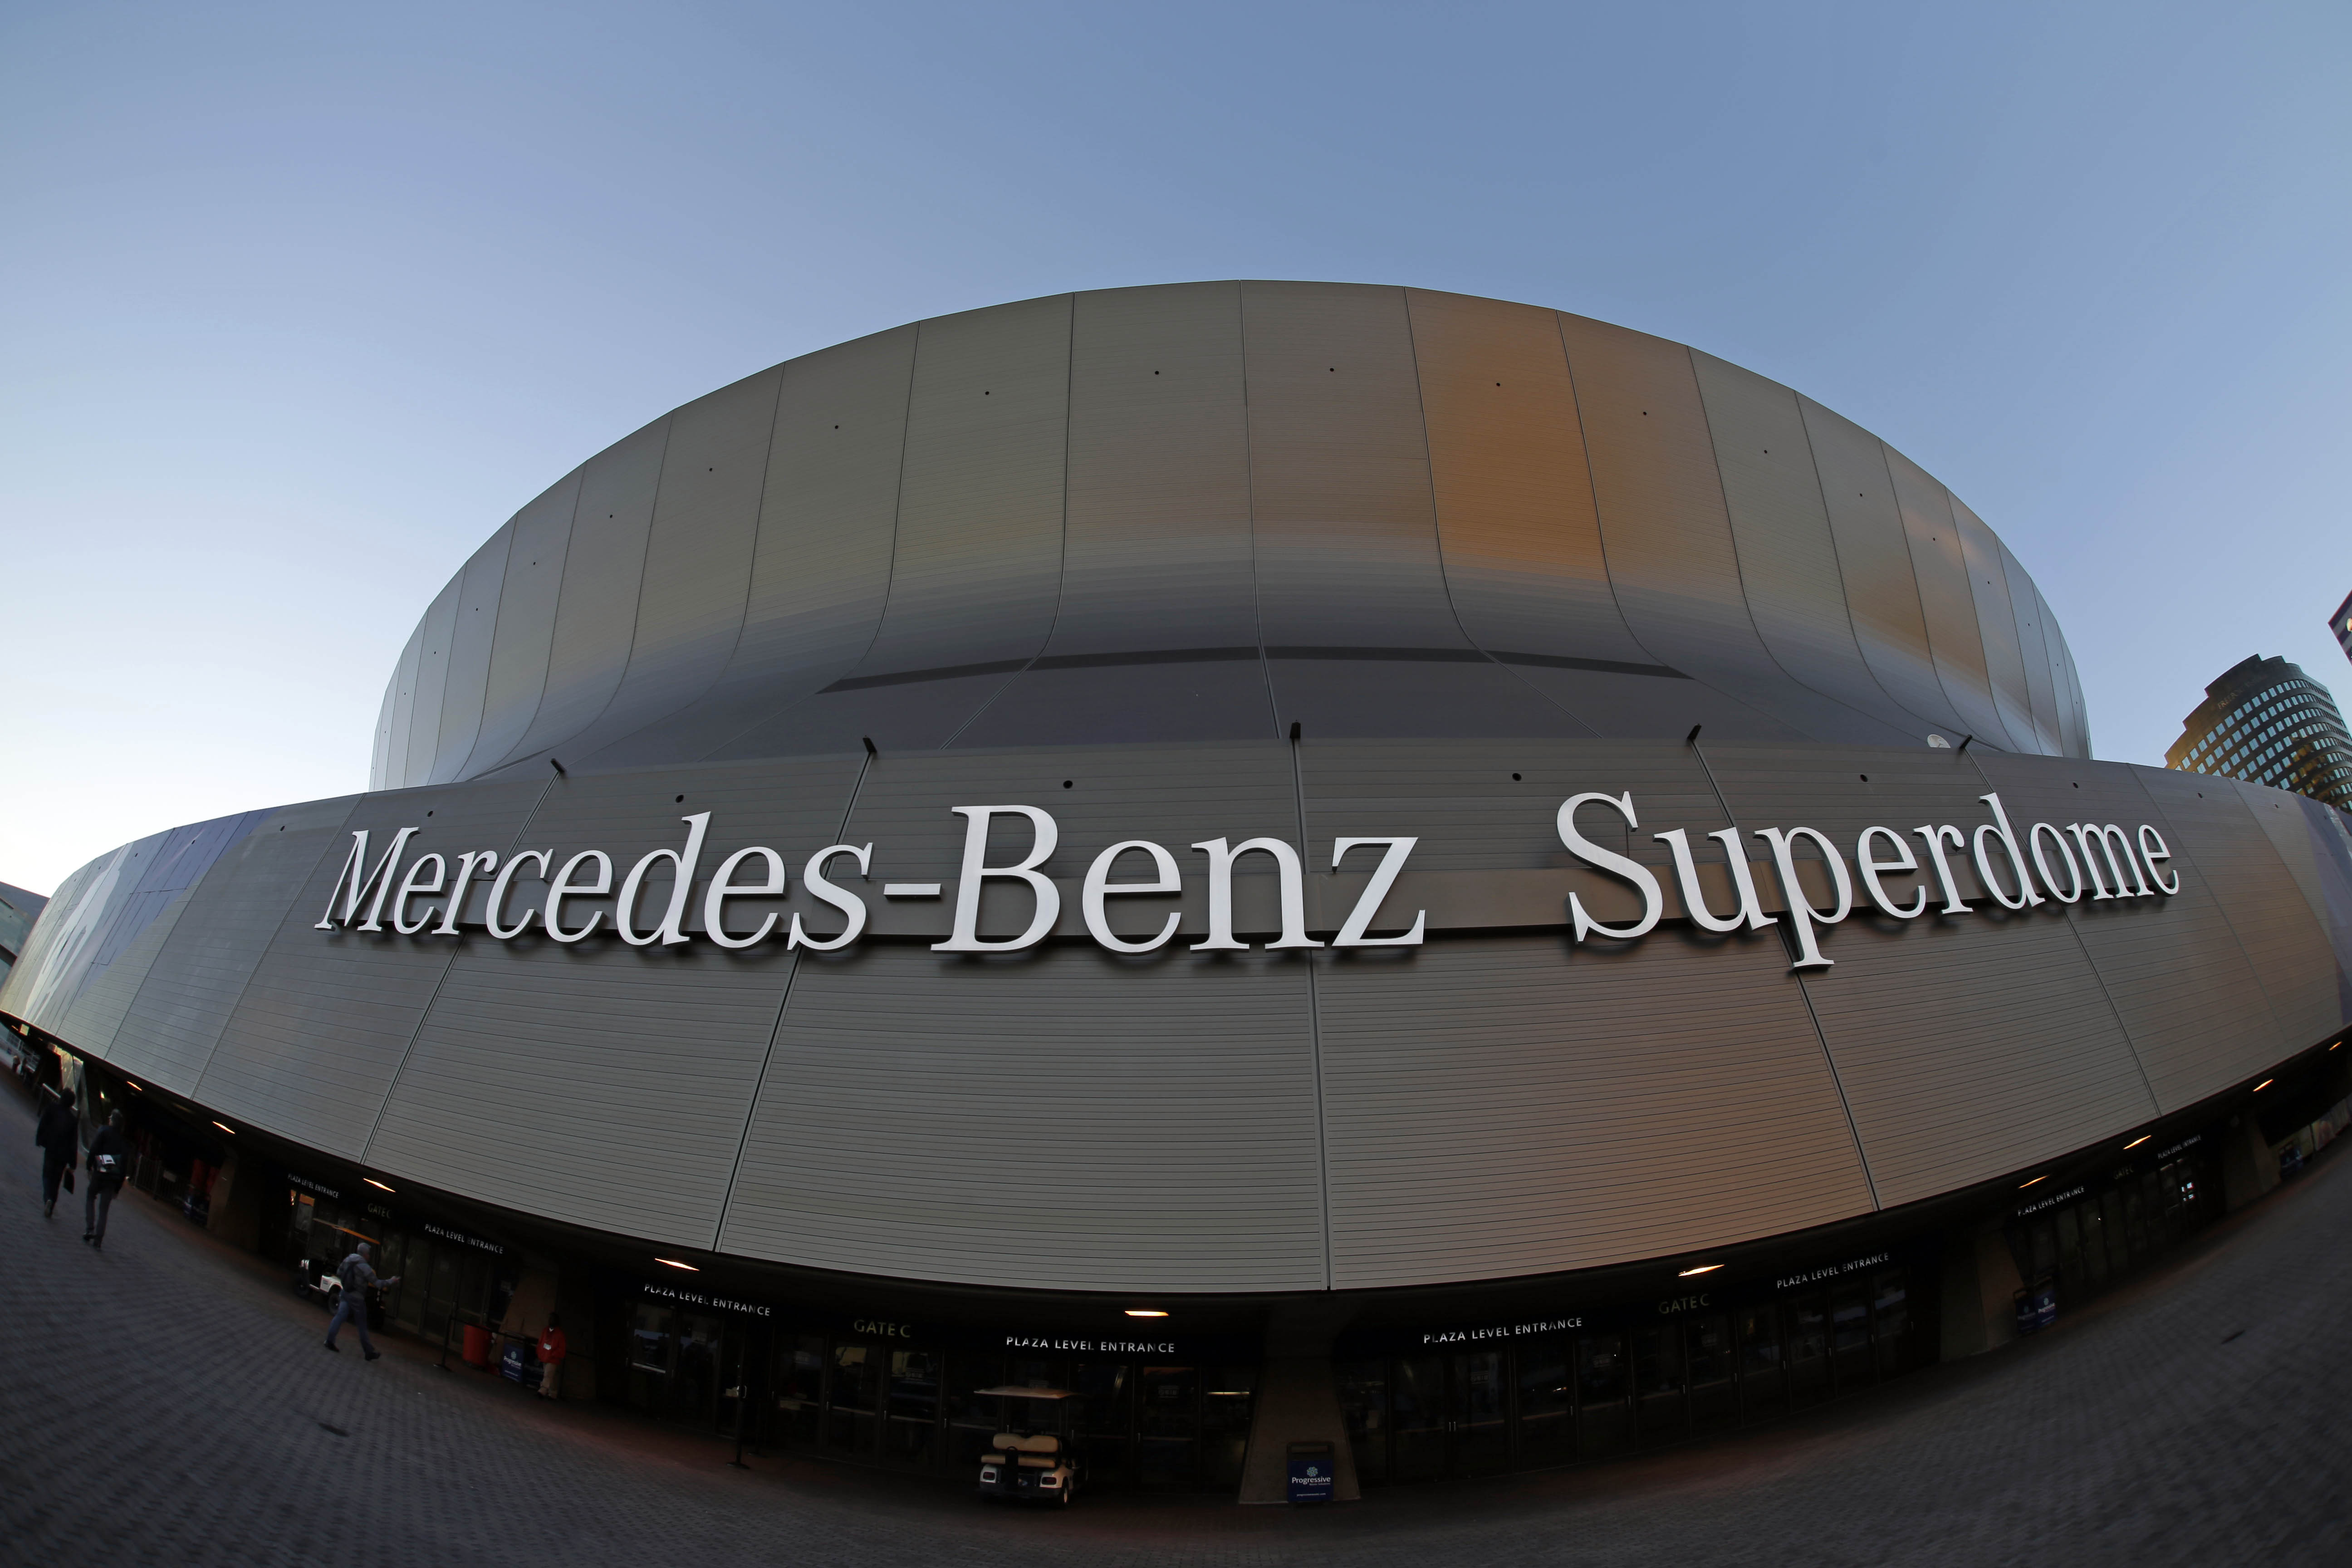 FILE - This is a Feb. 1, 2013, file photo showing the Mercedes-Benz Superdome in New Orleans. The Atlanta Falcons will share a stadium name with their biggest rival. Mercedes-Benz, which already has its name on the New Orleans Superdome, was announced as